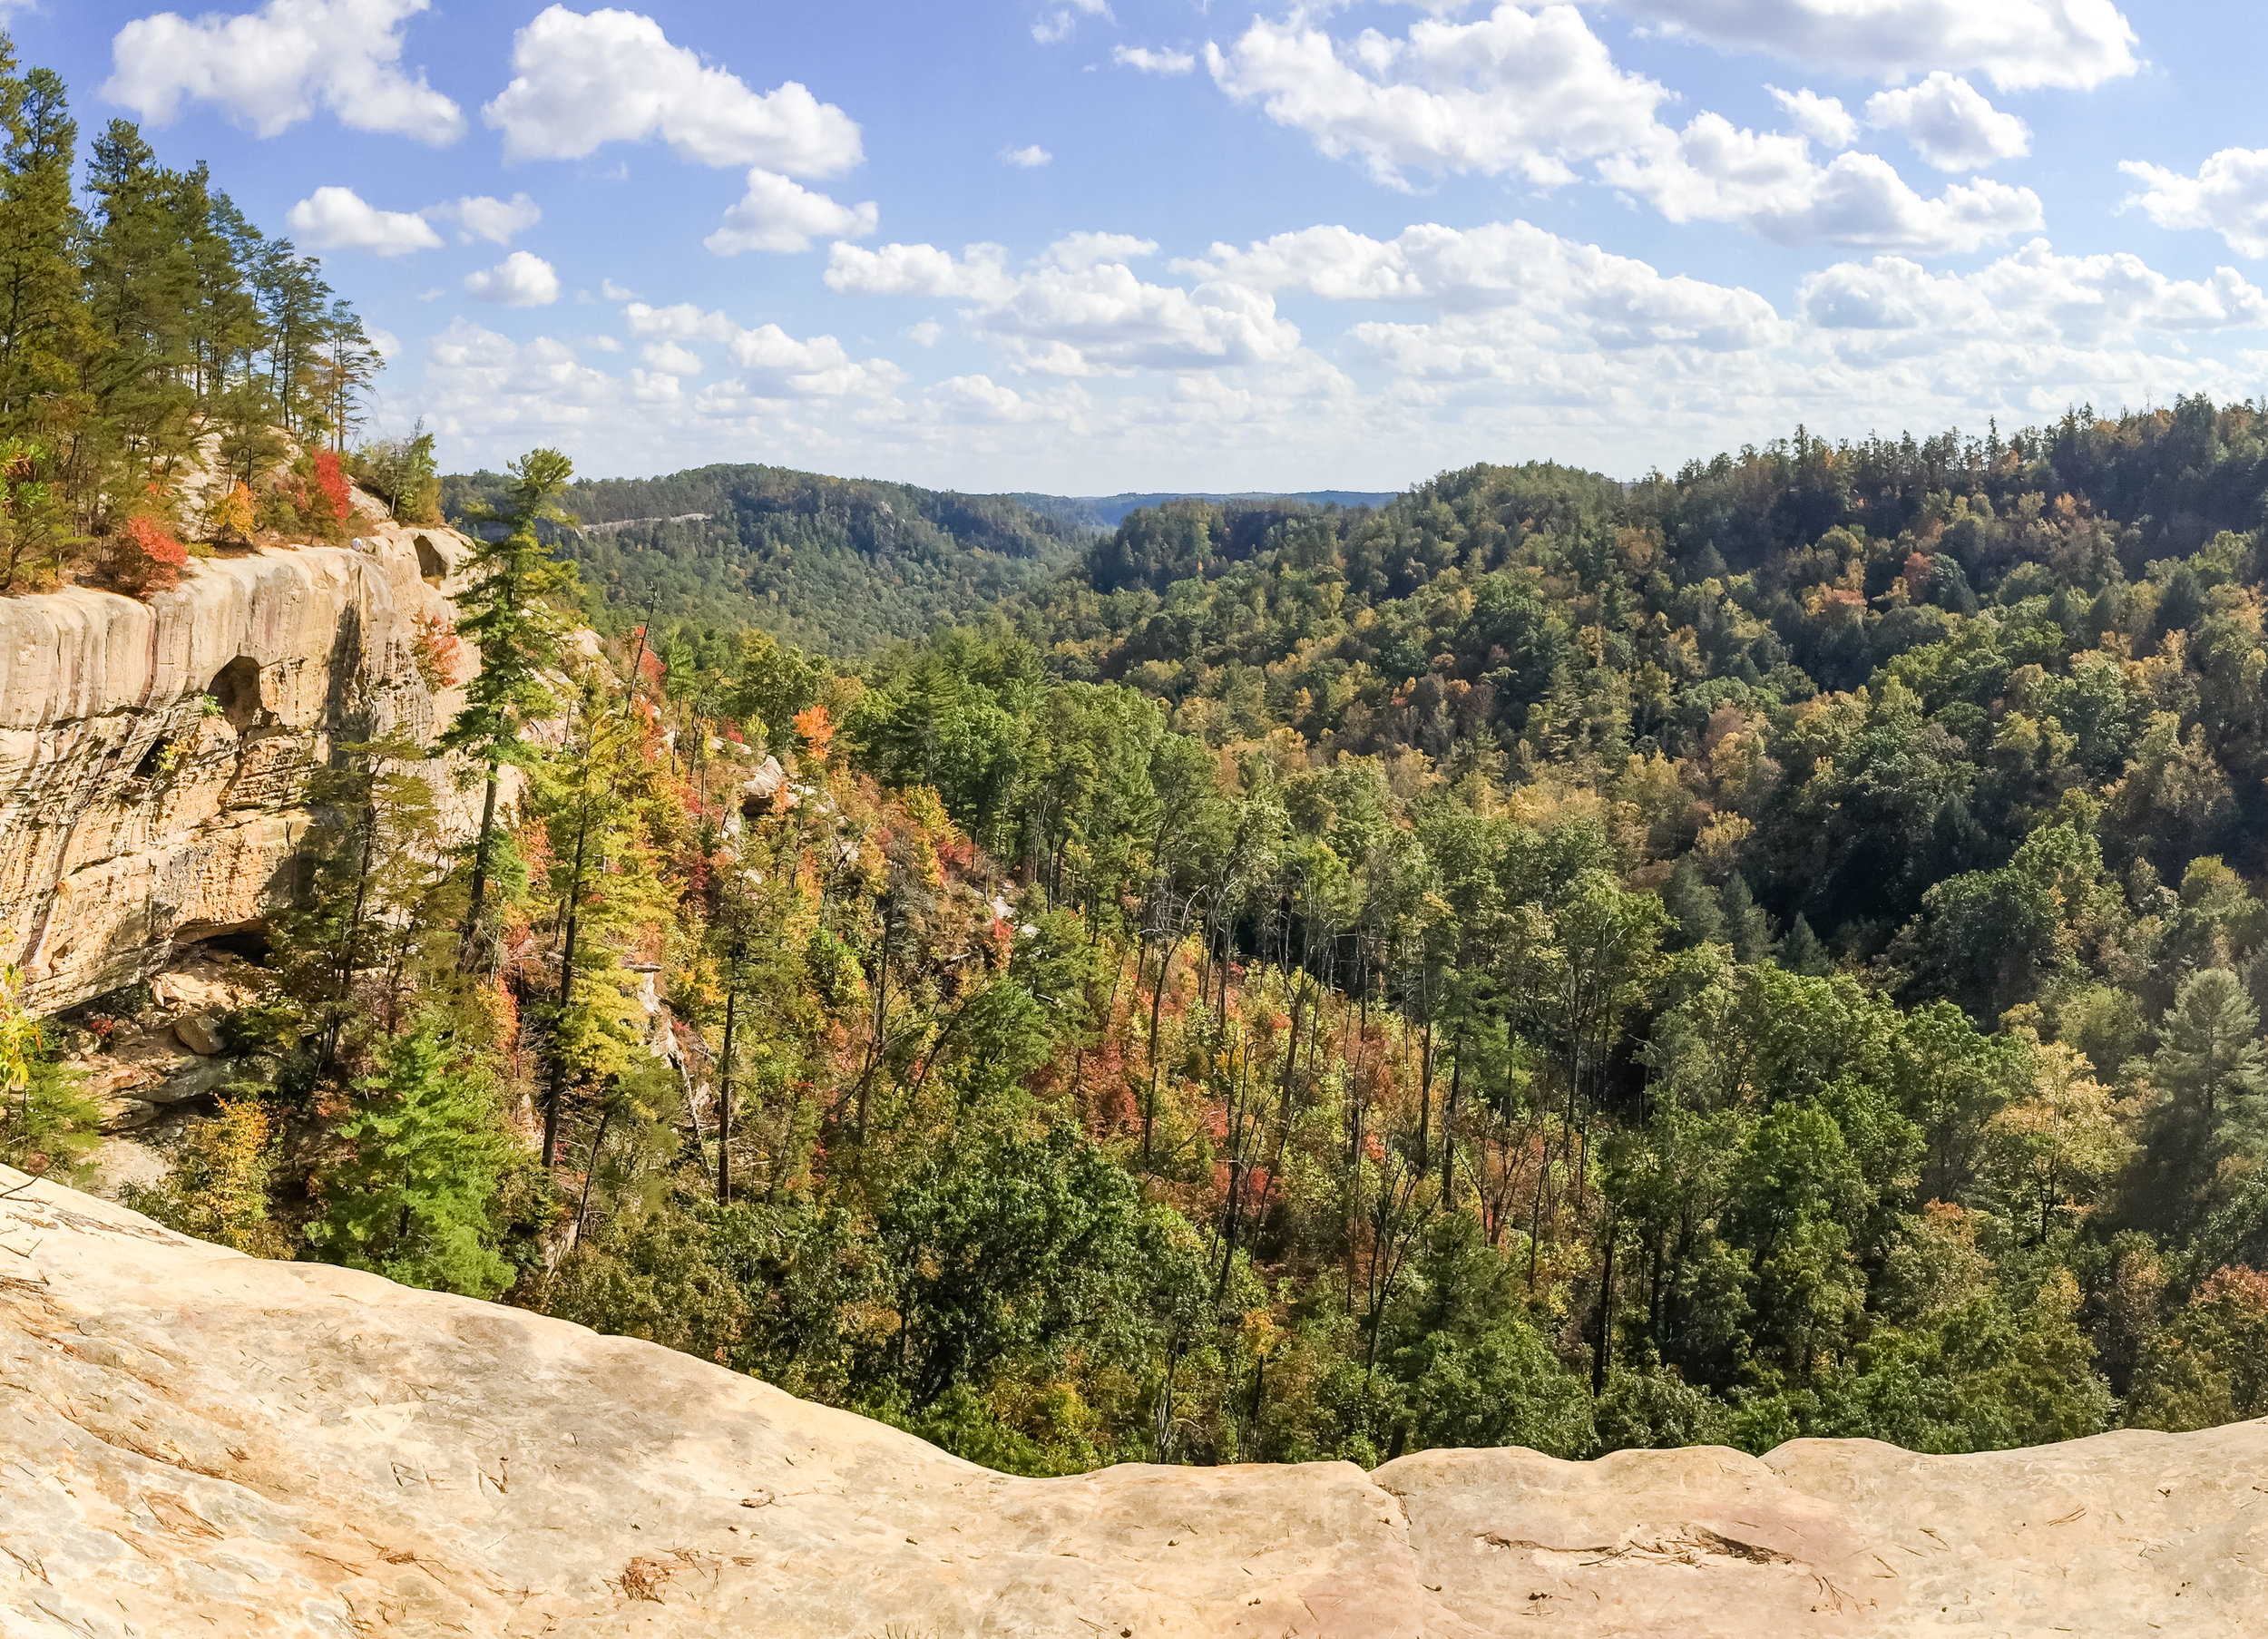 Views from Indian Staircase hike in Red River Gorge, Kentucky